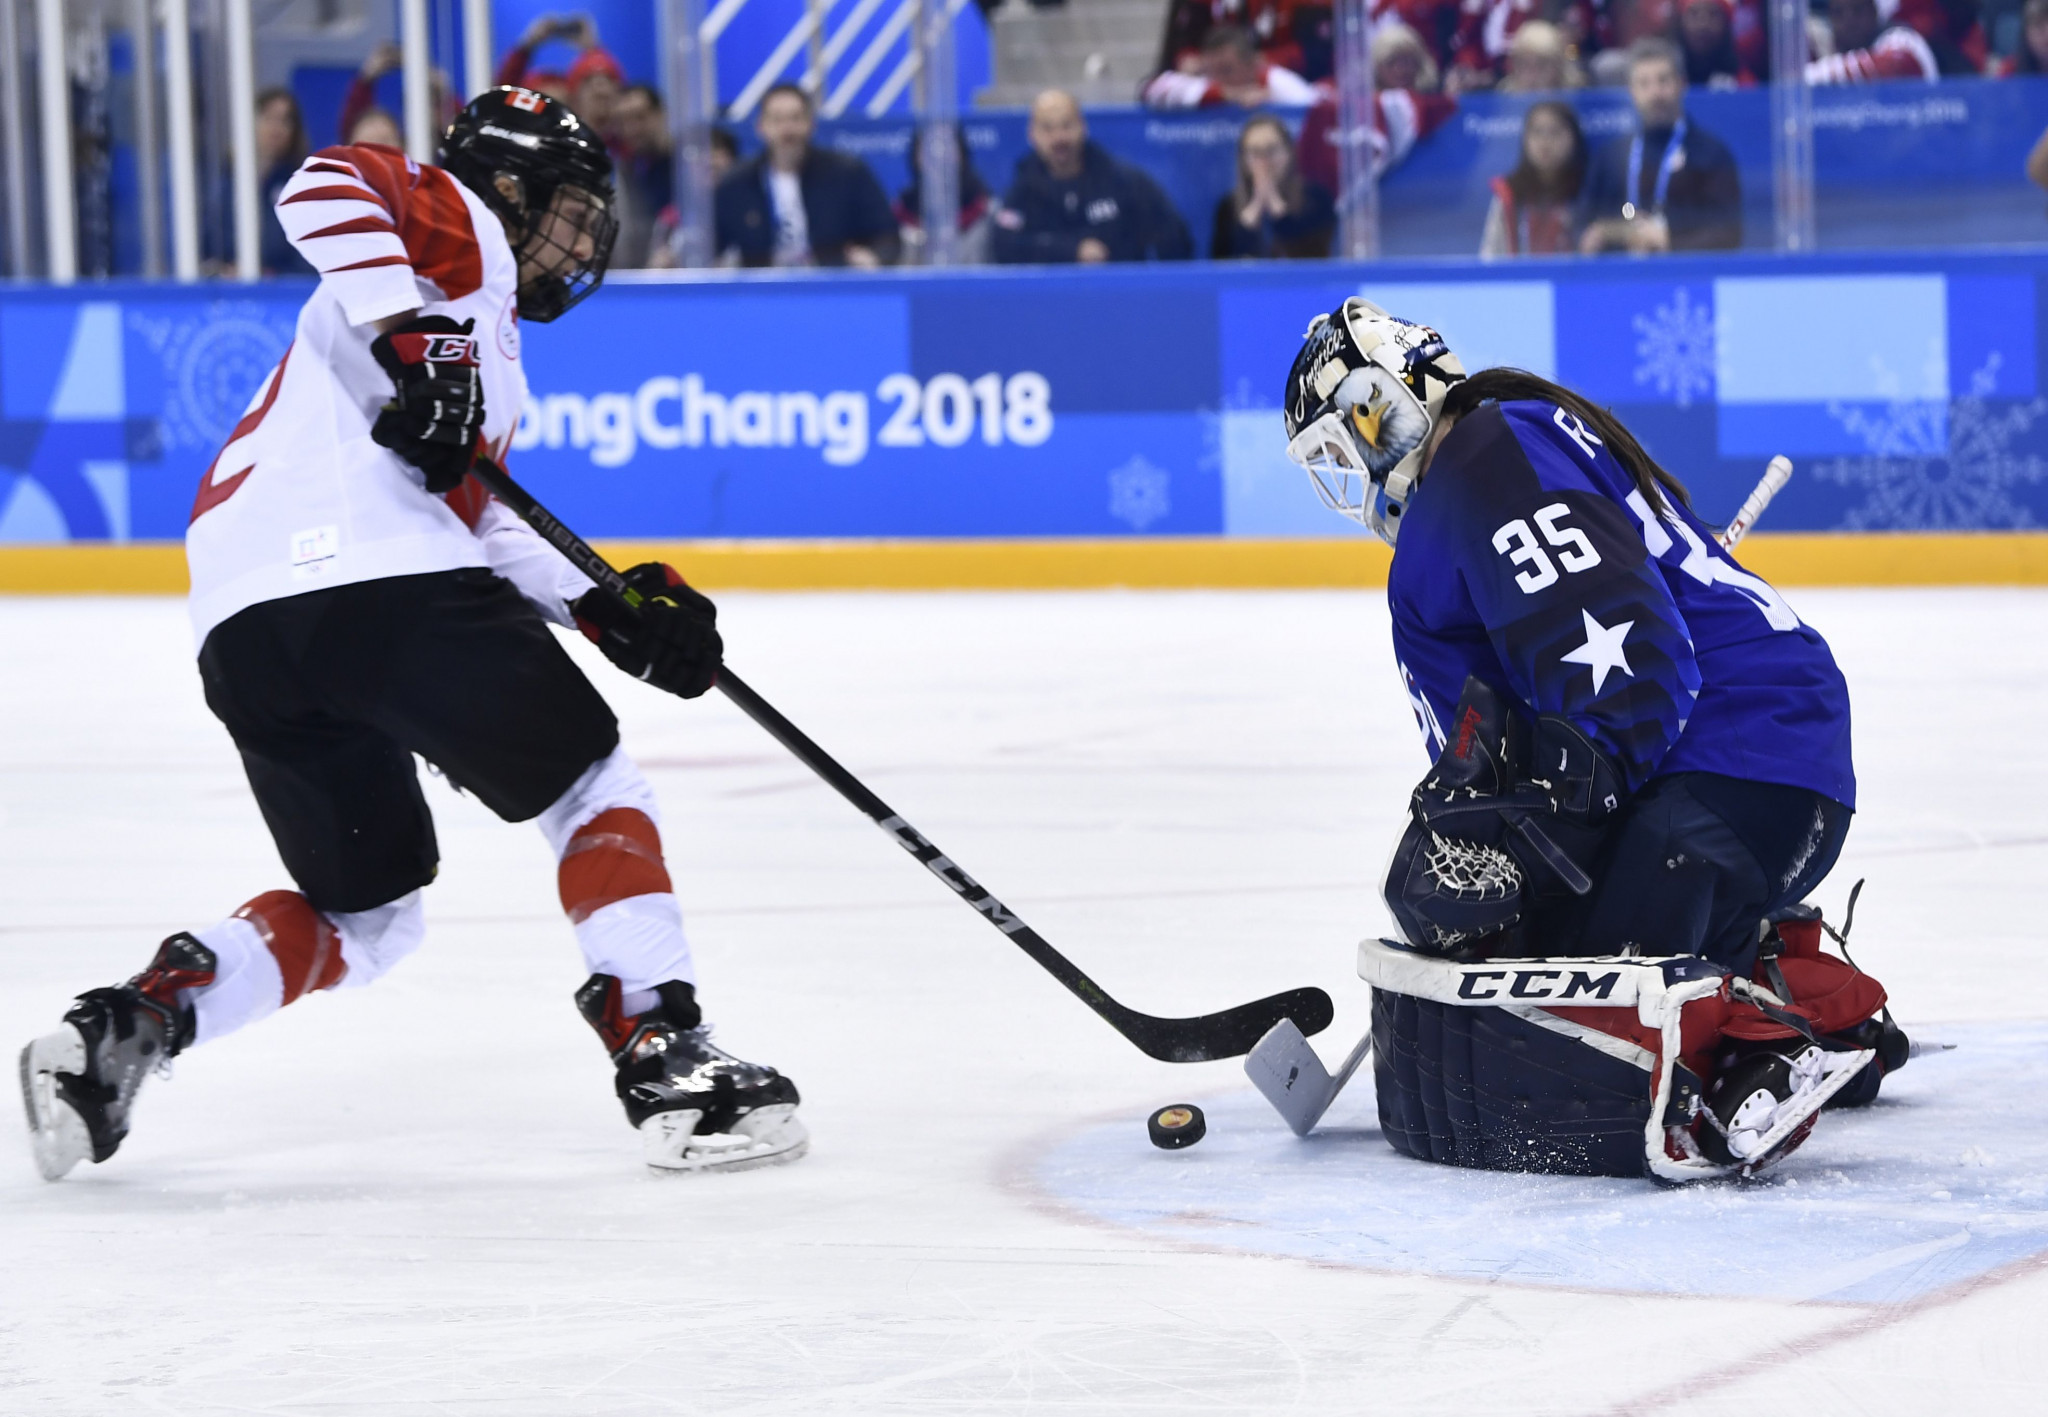 United States beat Canada in dramatic shoot-out to clinch first Olympic women's ice hockey title for 20 years